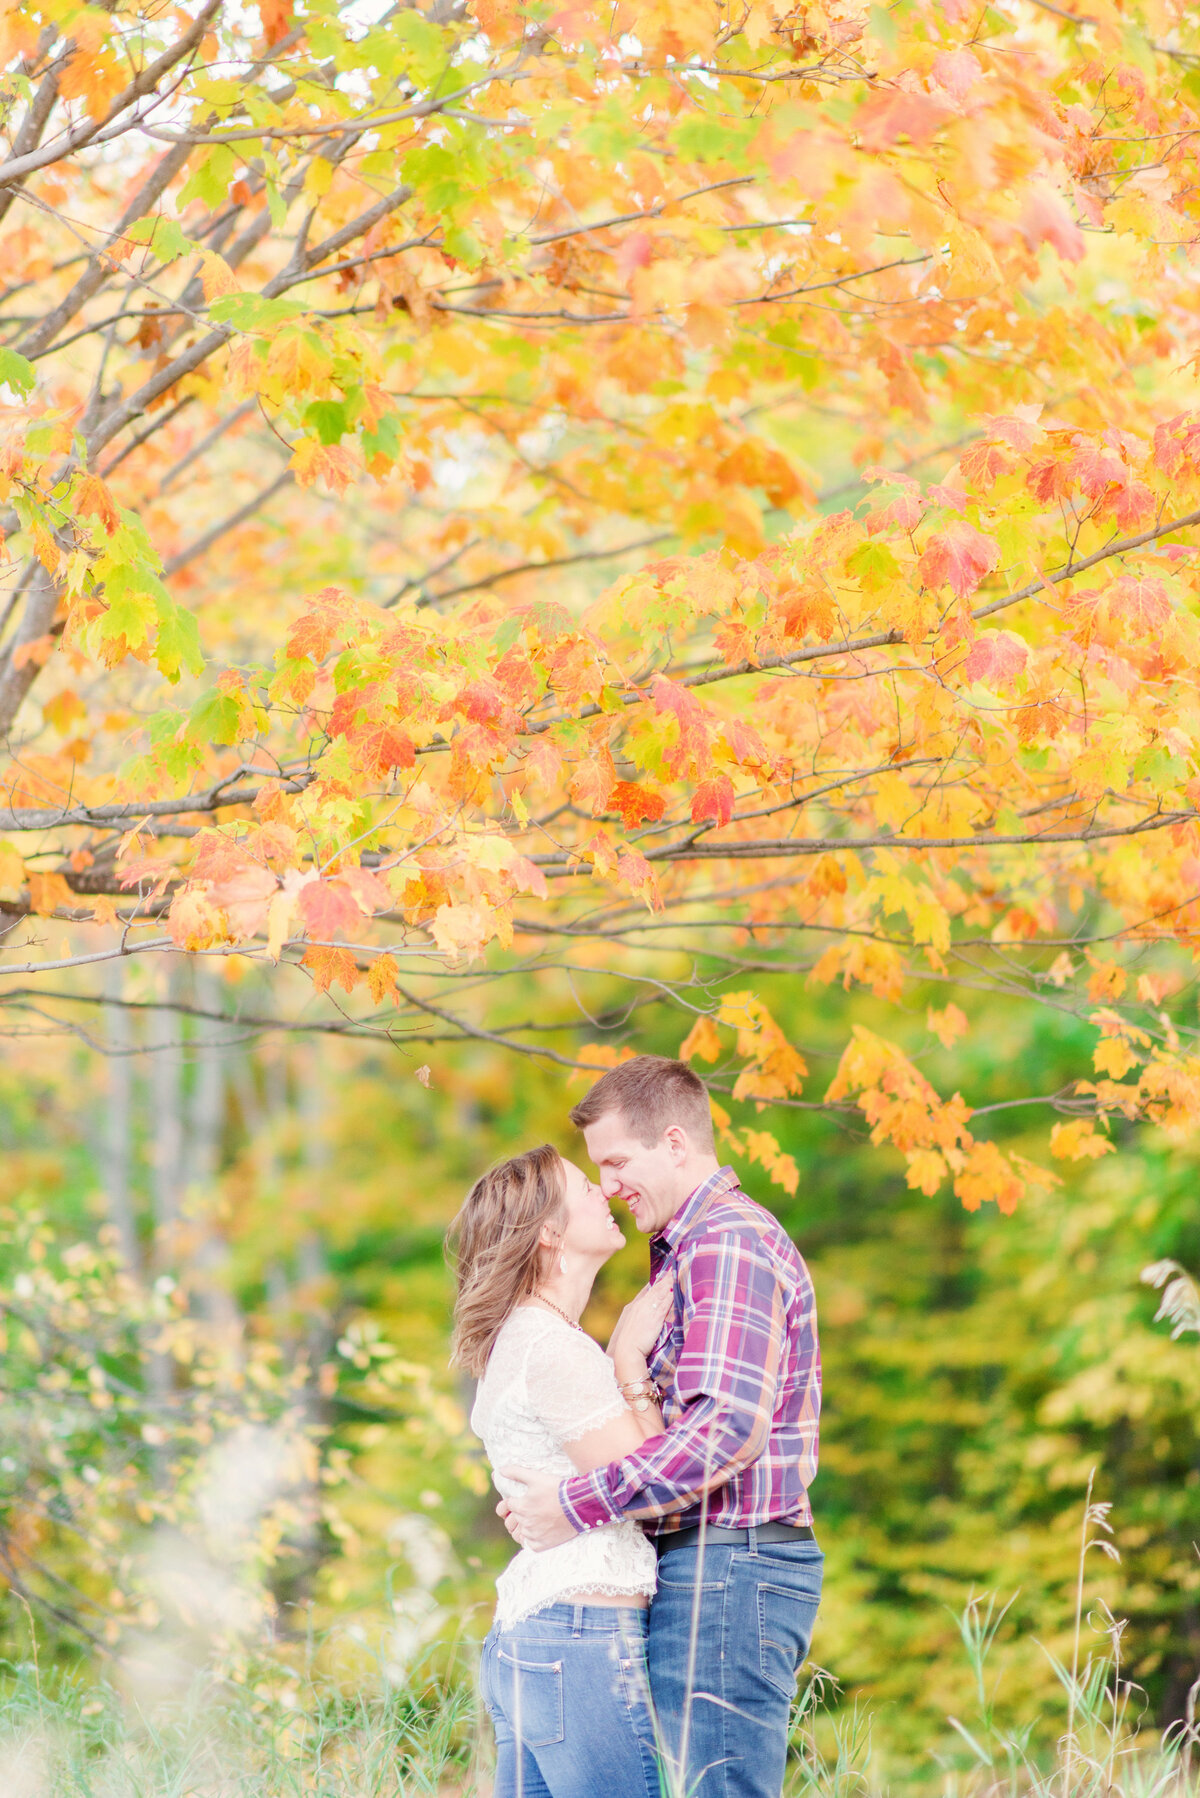 traverse-city-michigan-engagement-wedding-photography-11